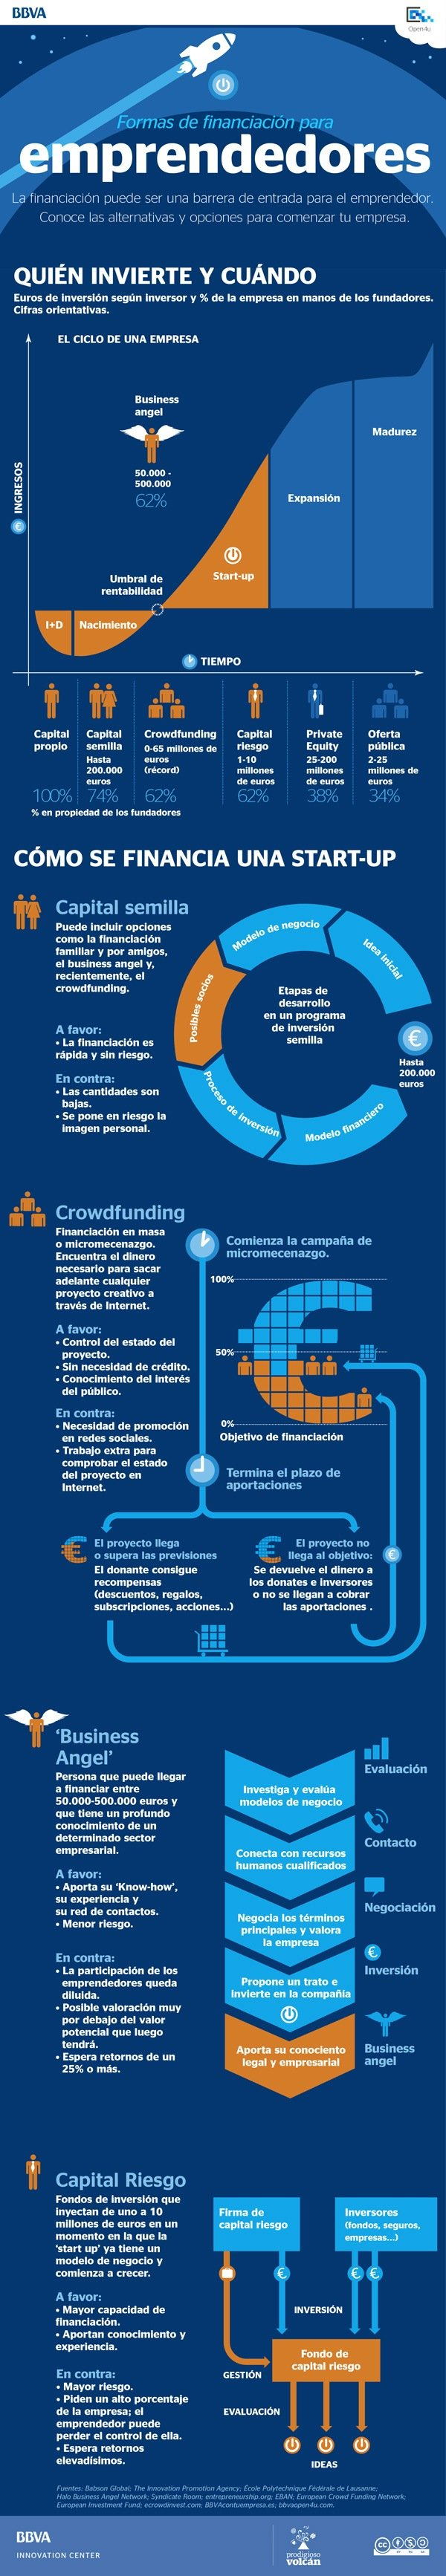 formas-financiacion-emprendeores-infografia